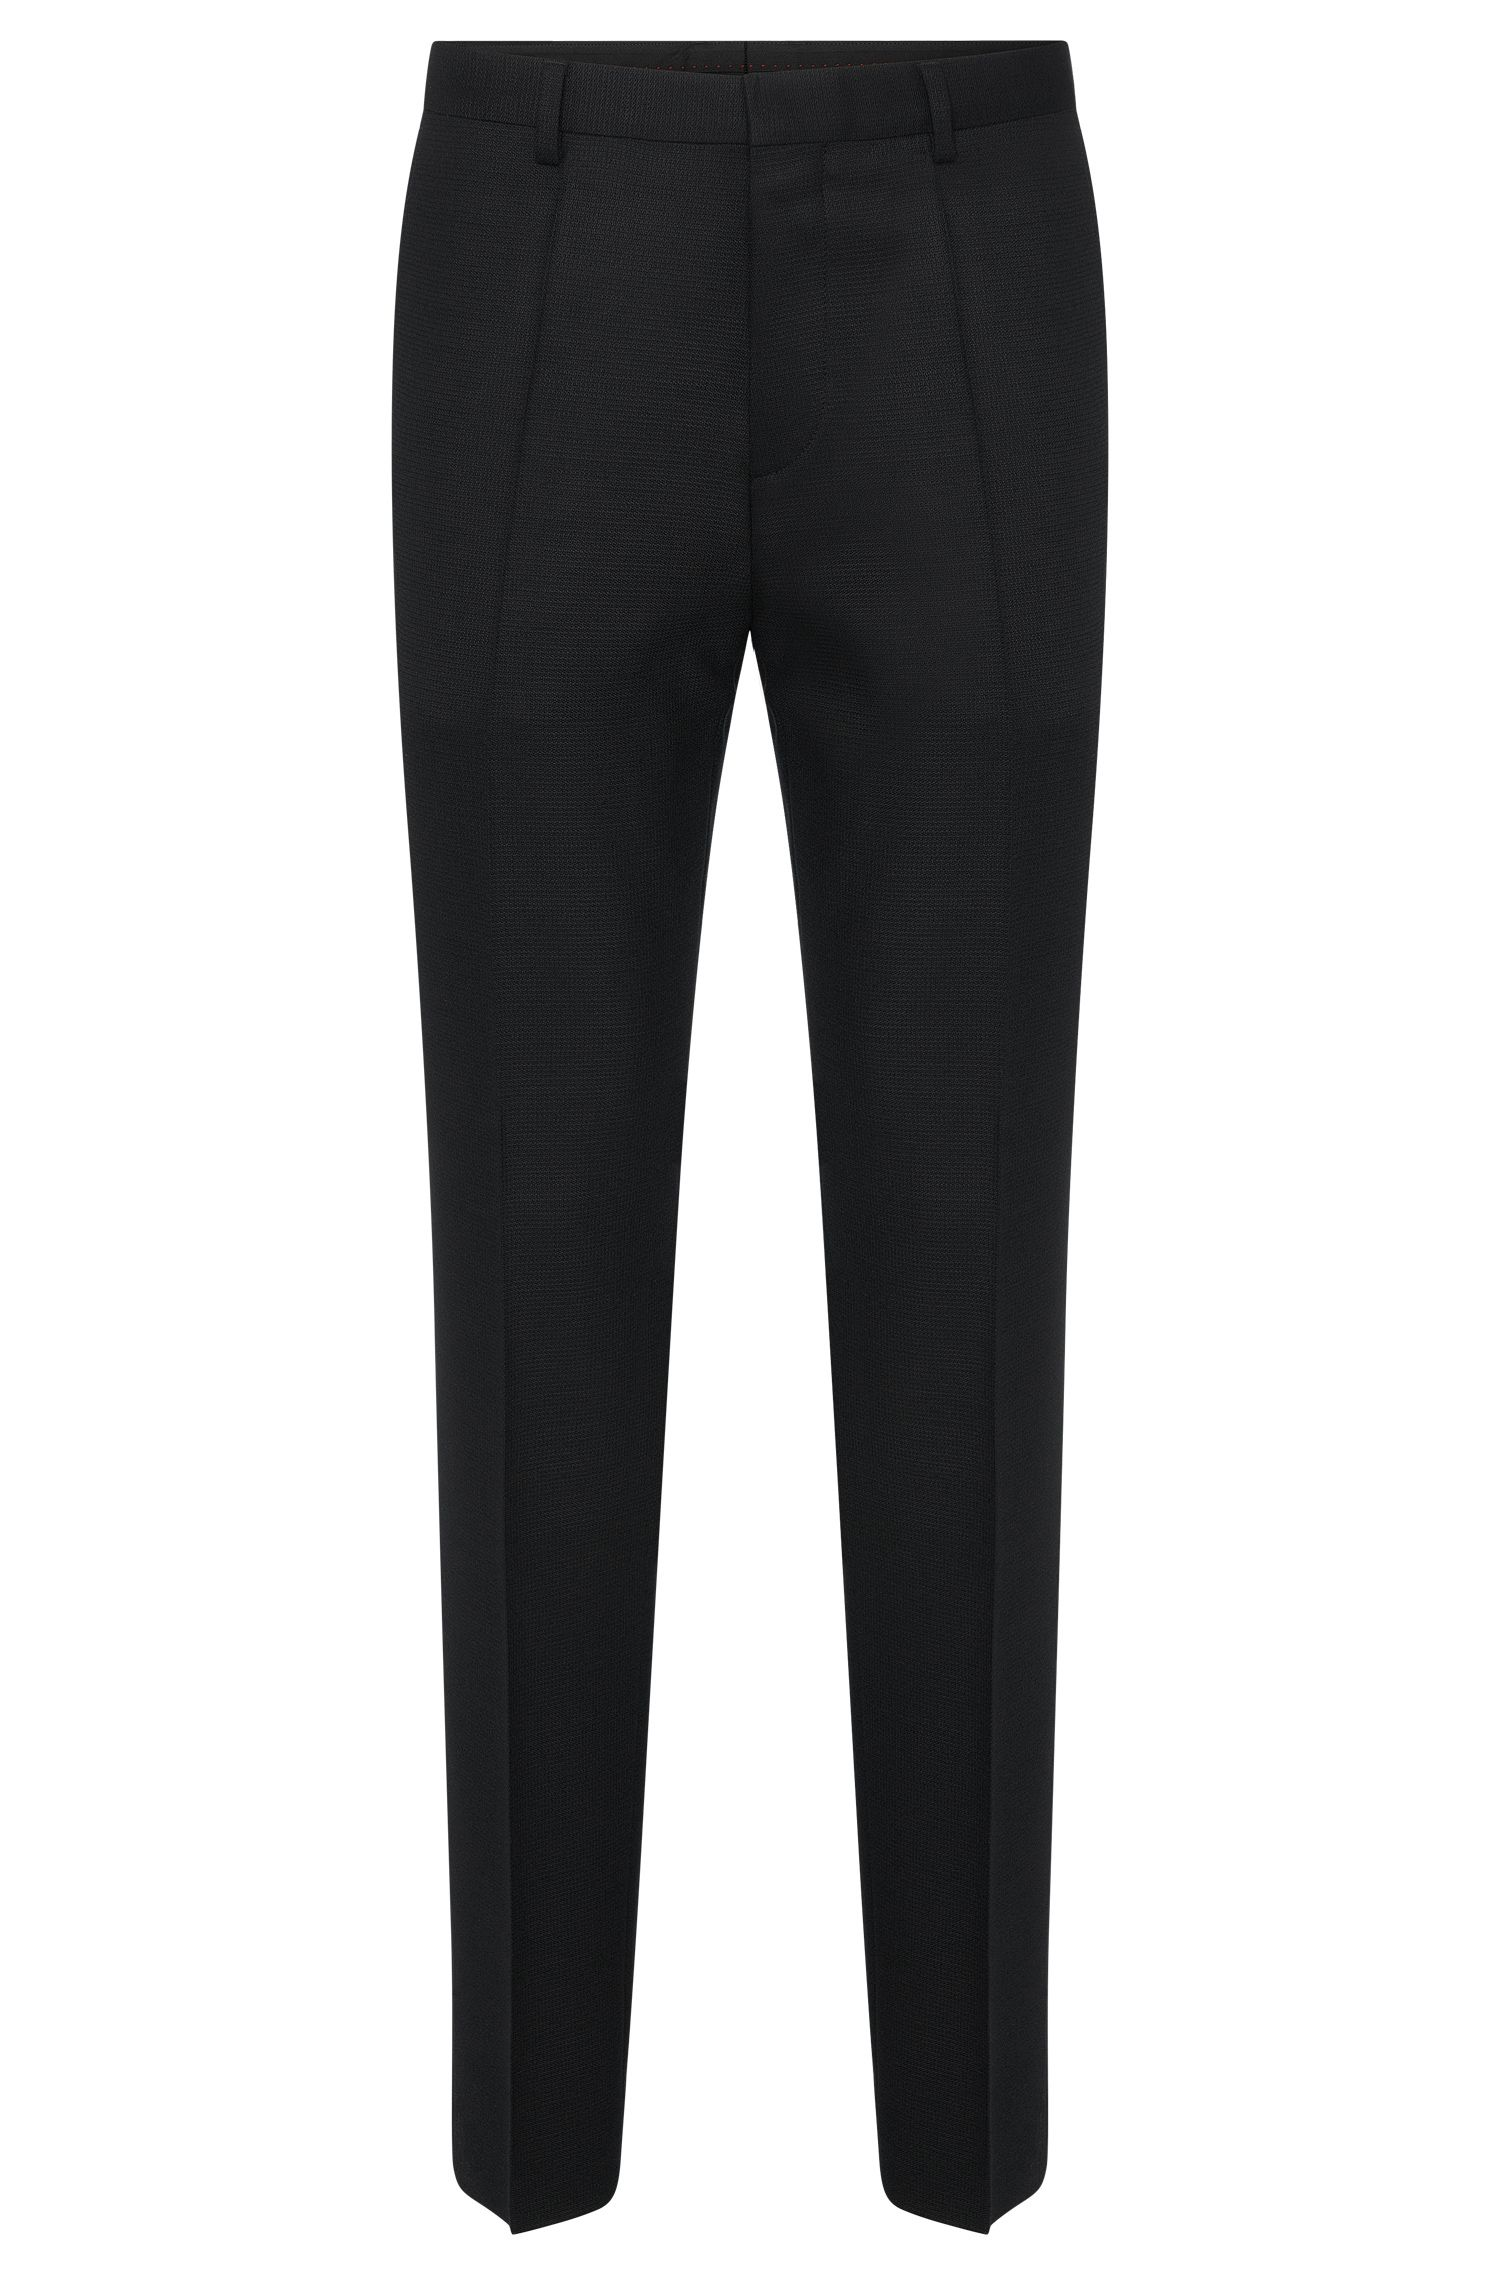 'Hets' | Slim Fit, Stretch Virgin Wool Blend Patterned Dress Pants